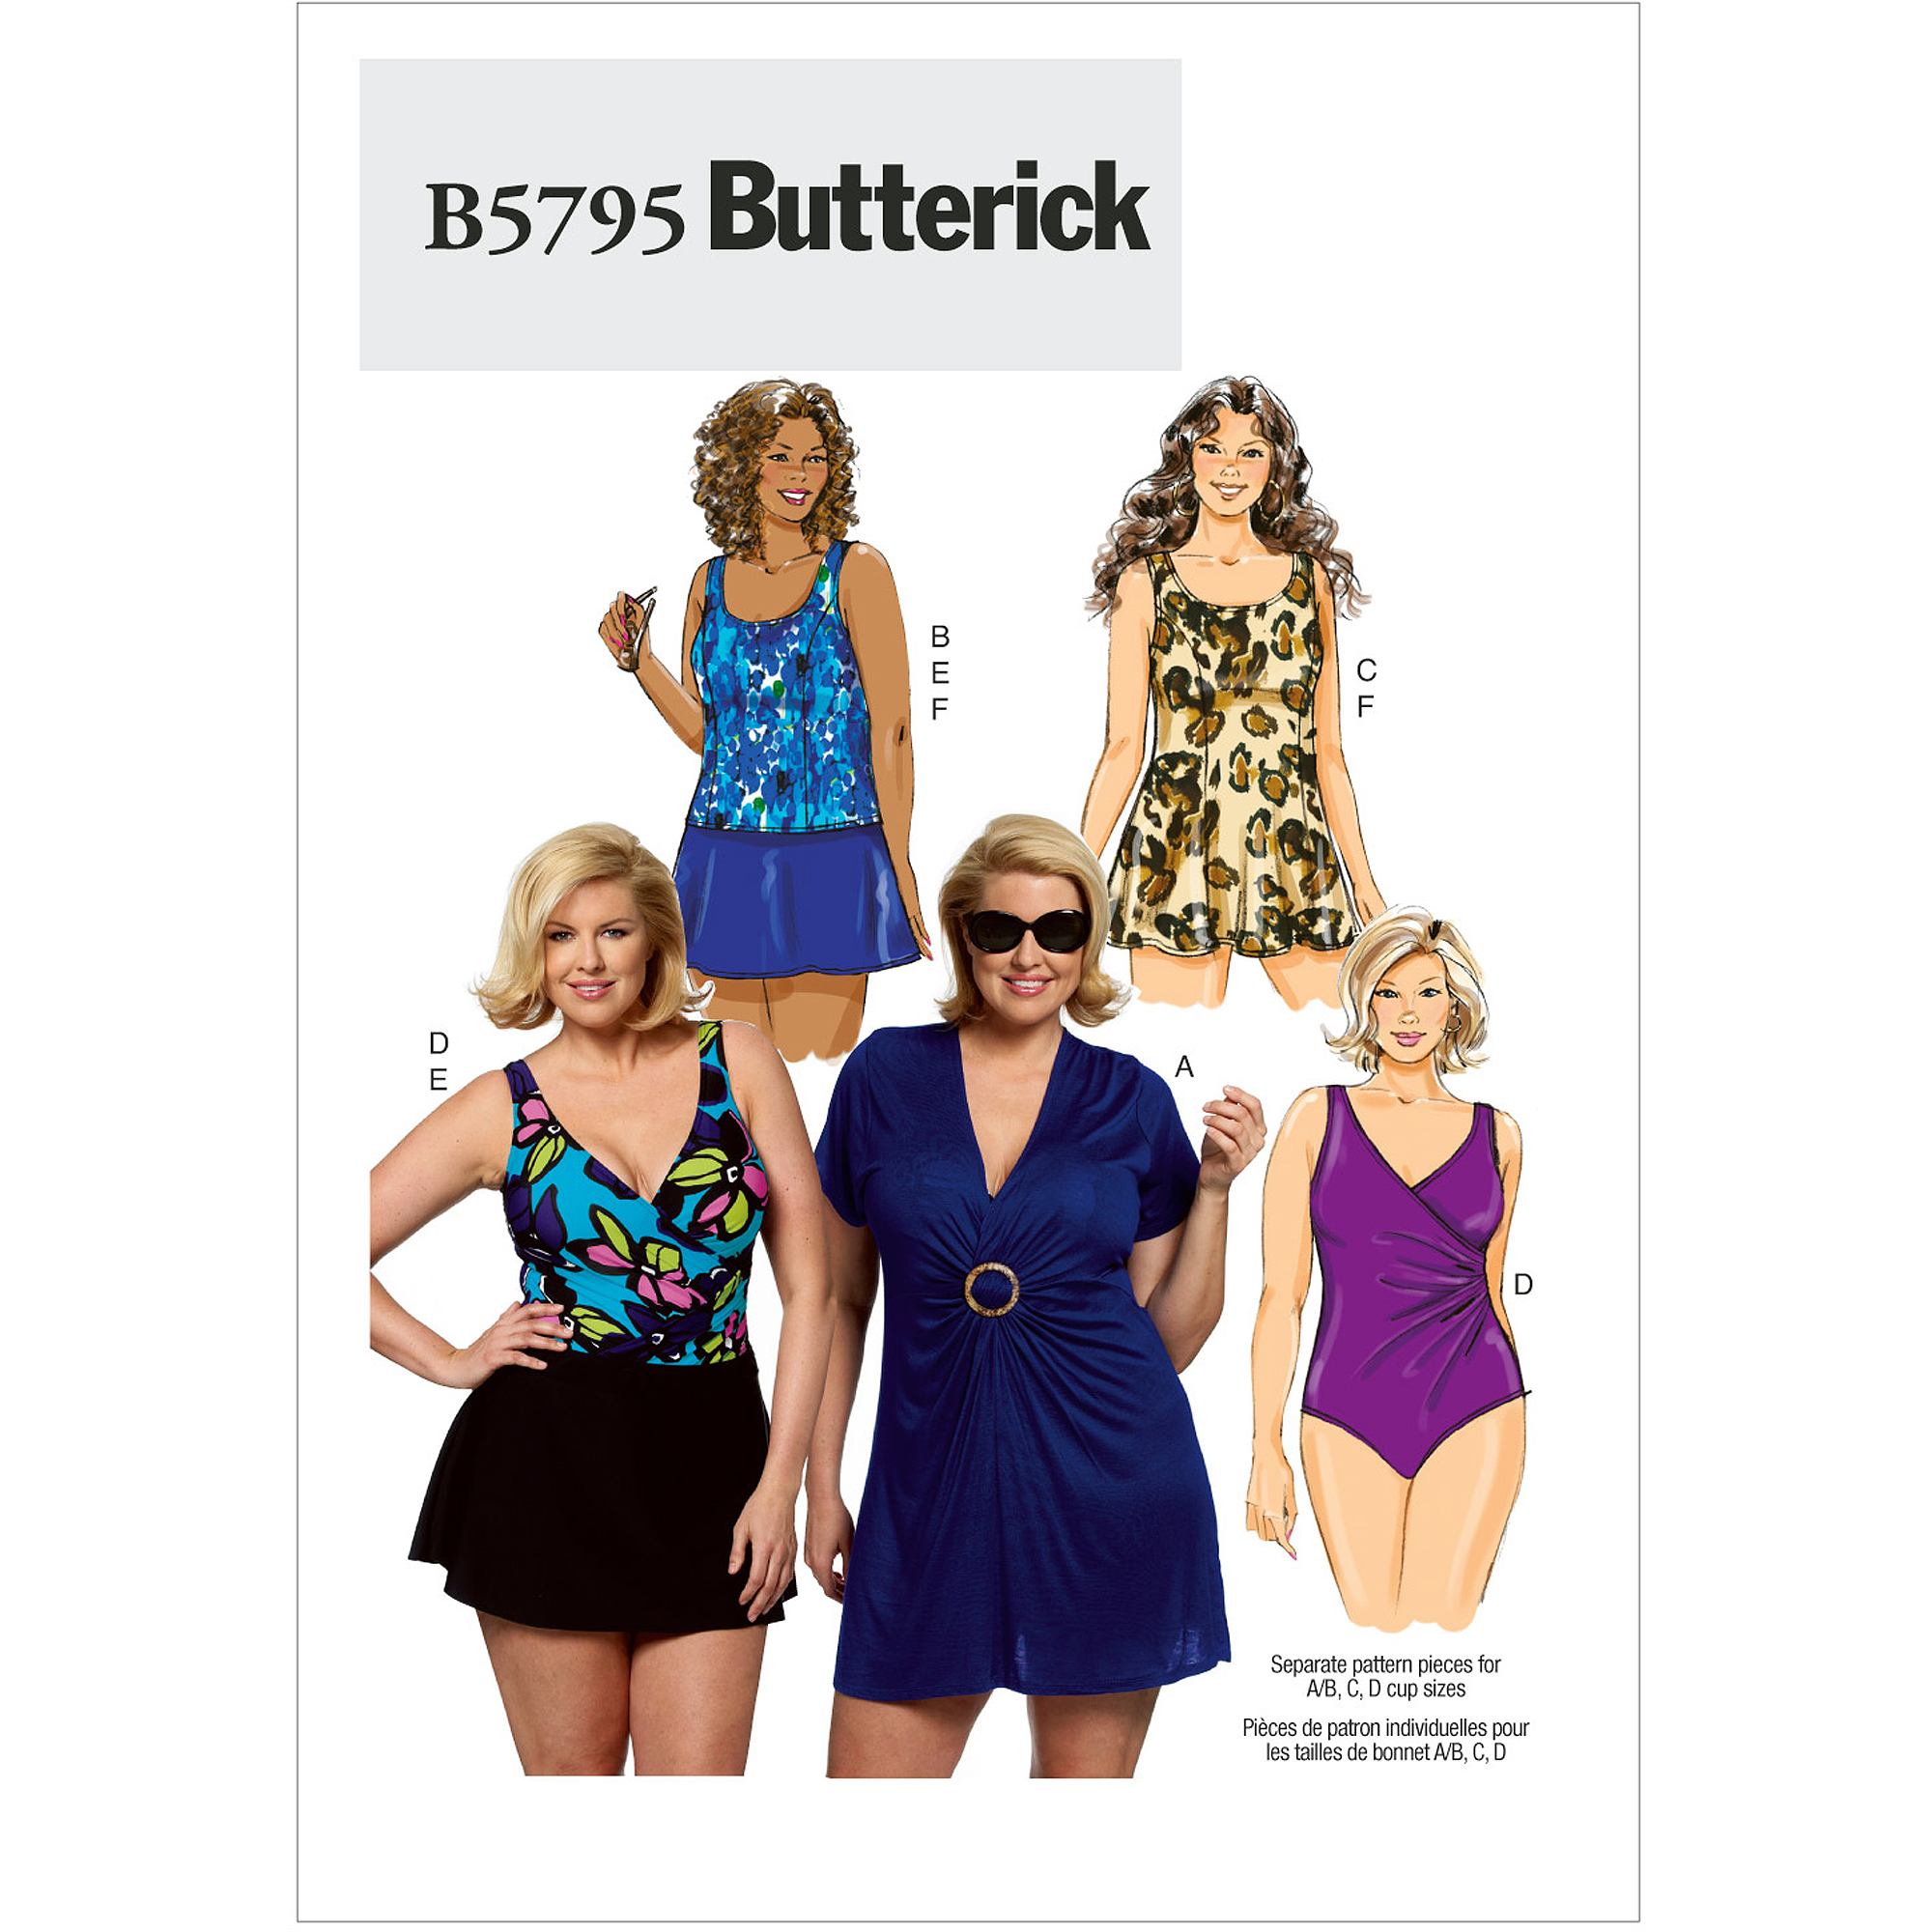 Butterick Pattern Women's Cover-Up, Top, Swimdress, Swimsuit, Skirt and Briefs, RR (18W, 20W, 22W, 24W)